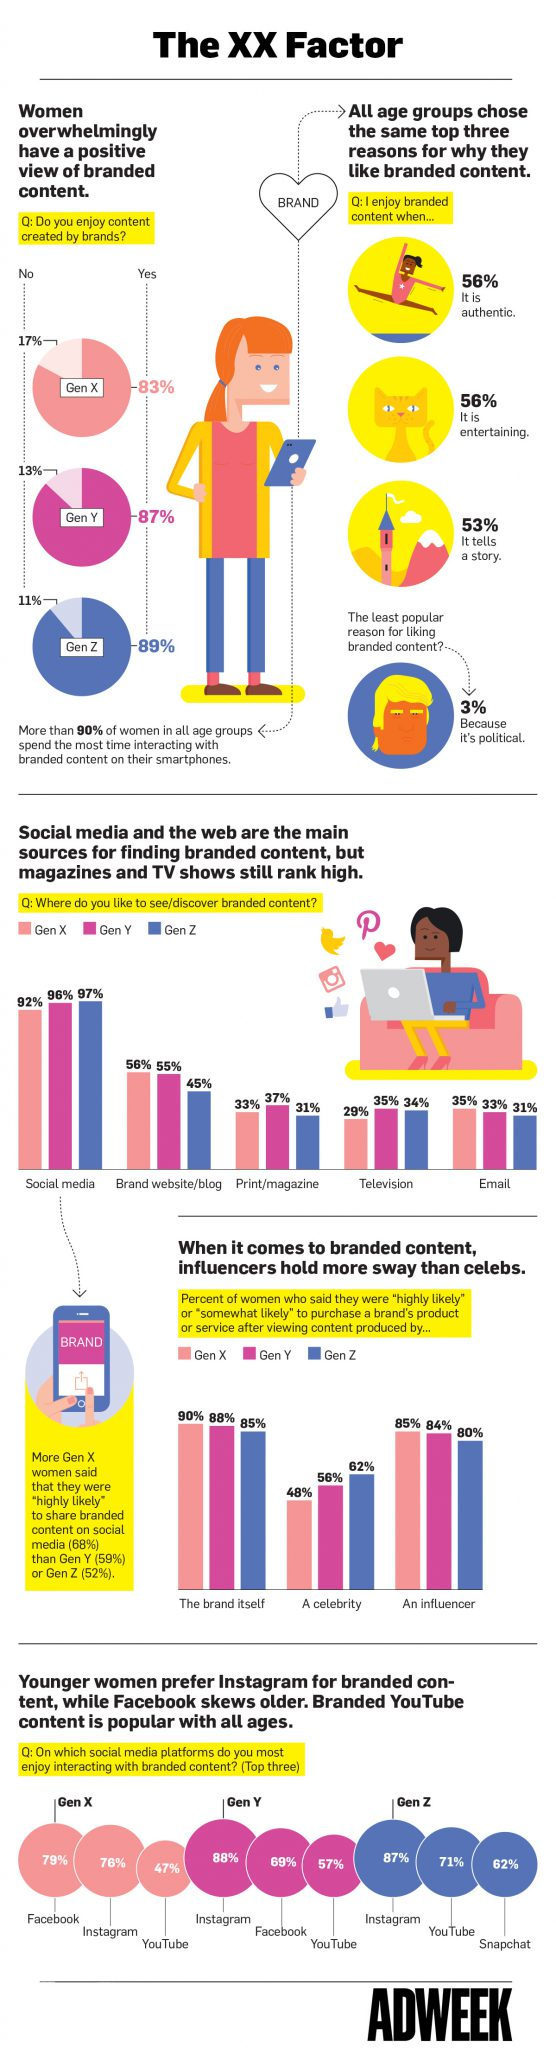 Marketing To Generation Z? This infographic from Influenceter proves video content is key.